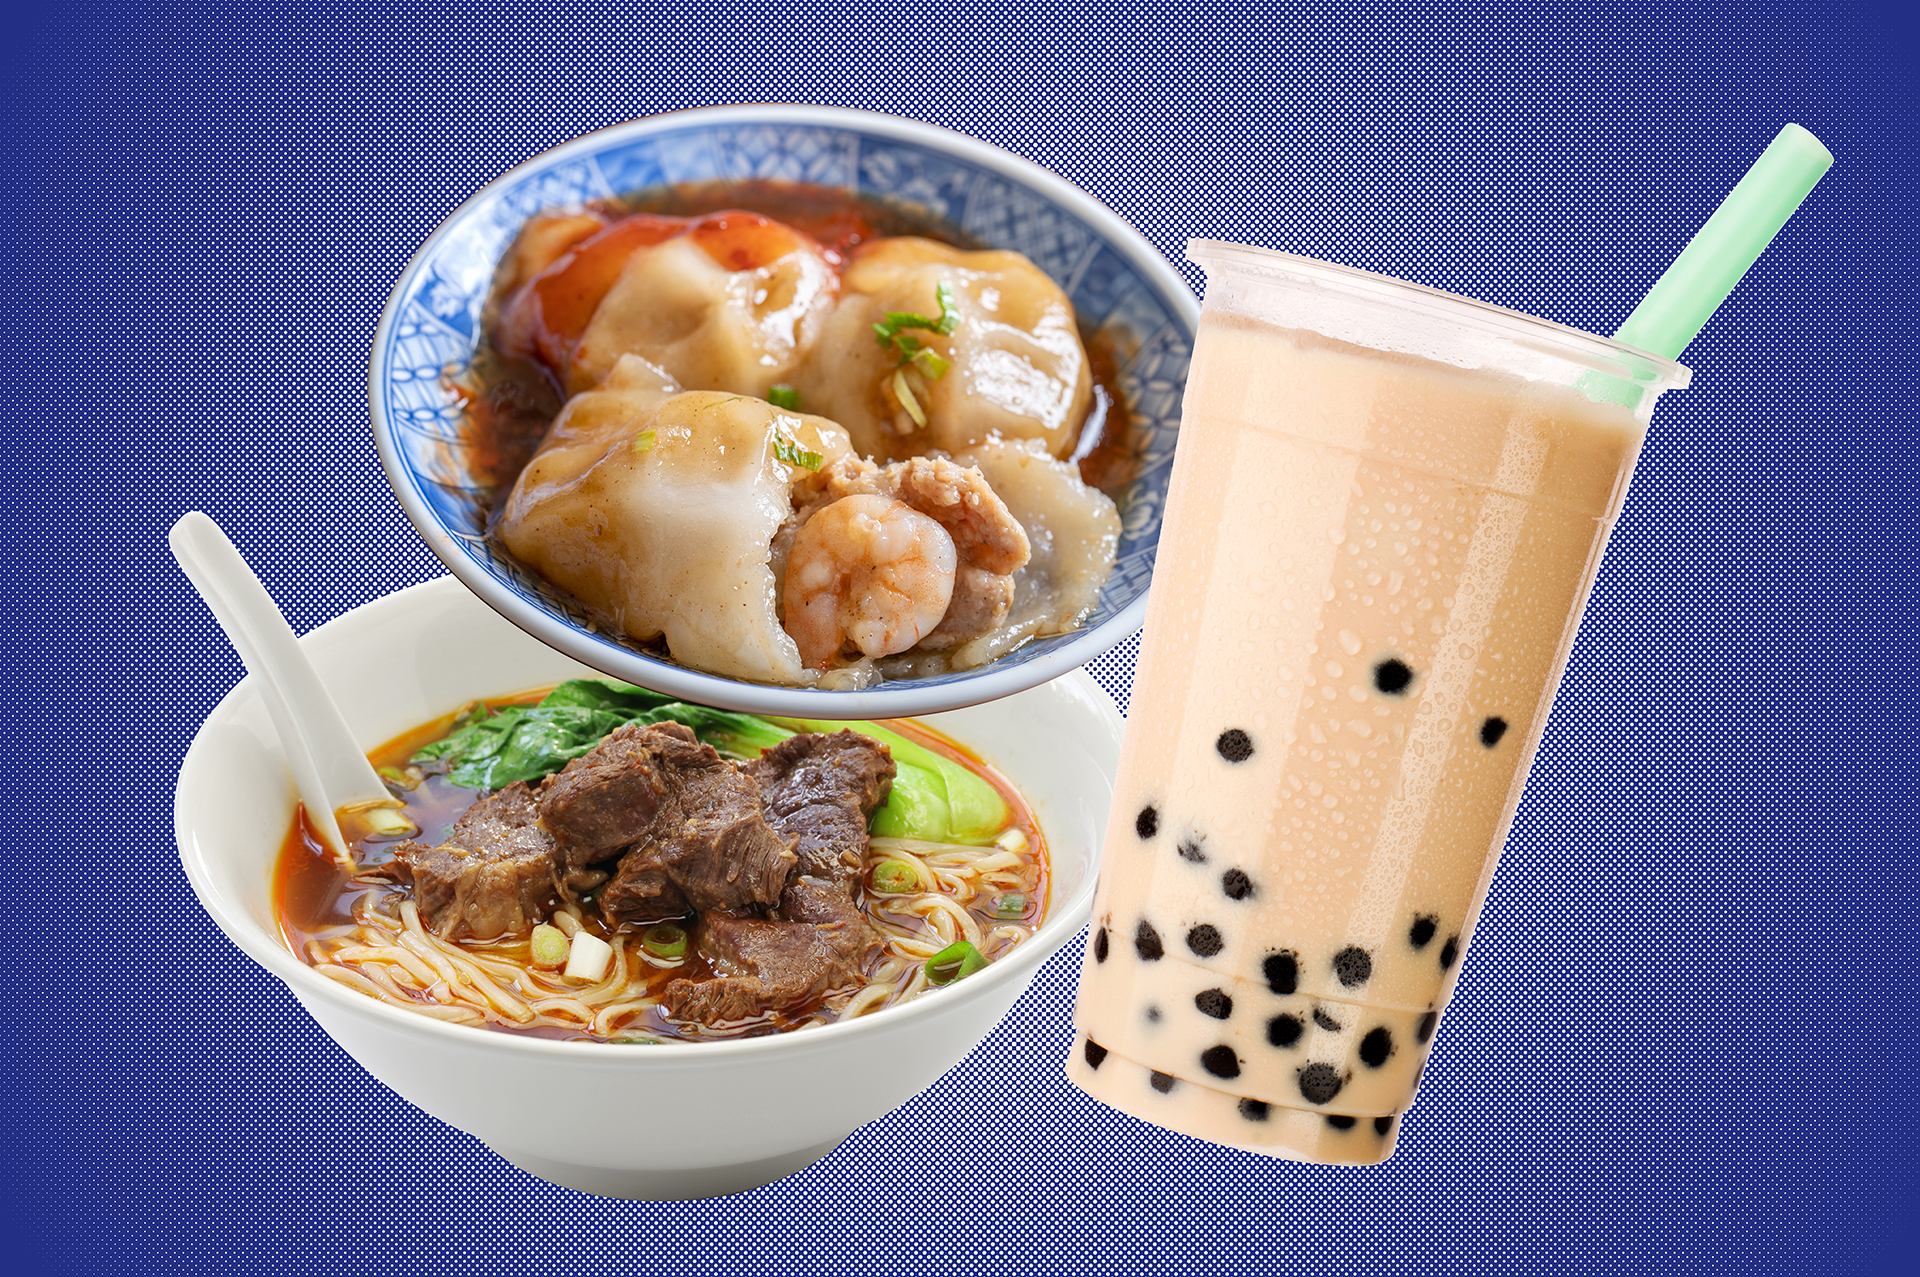 A collage of Taiwanese foods (ba-wan, beef noodle soup, and boba milk tea) on a blue background.